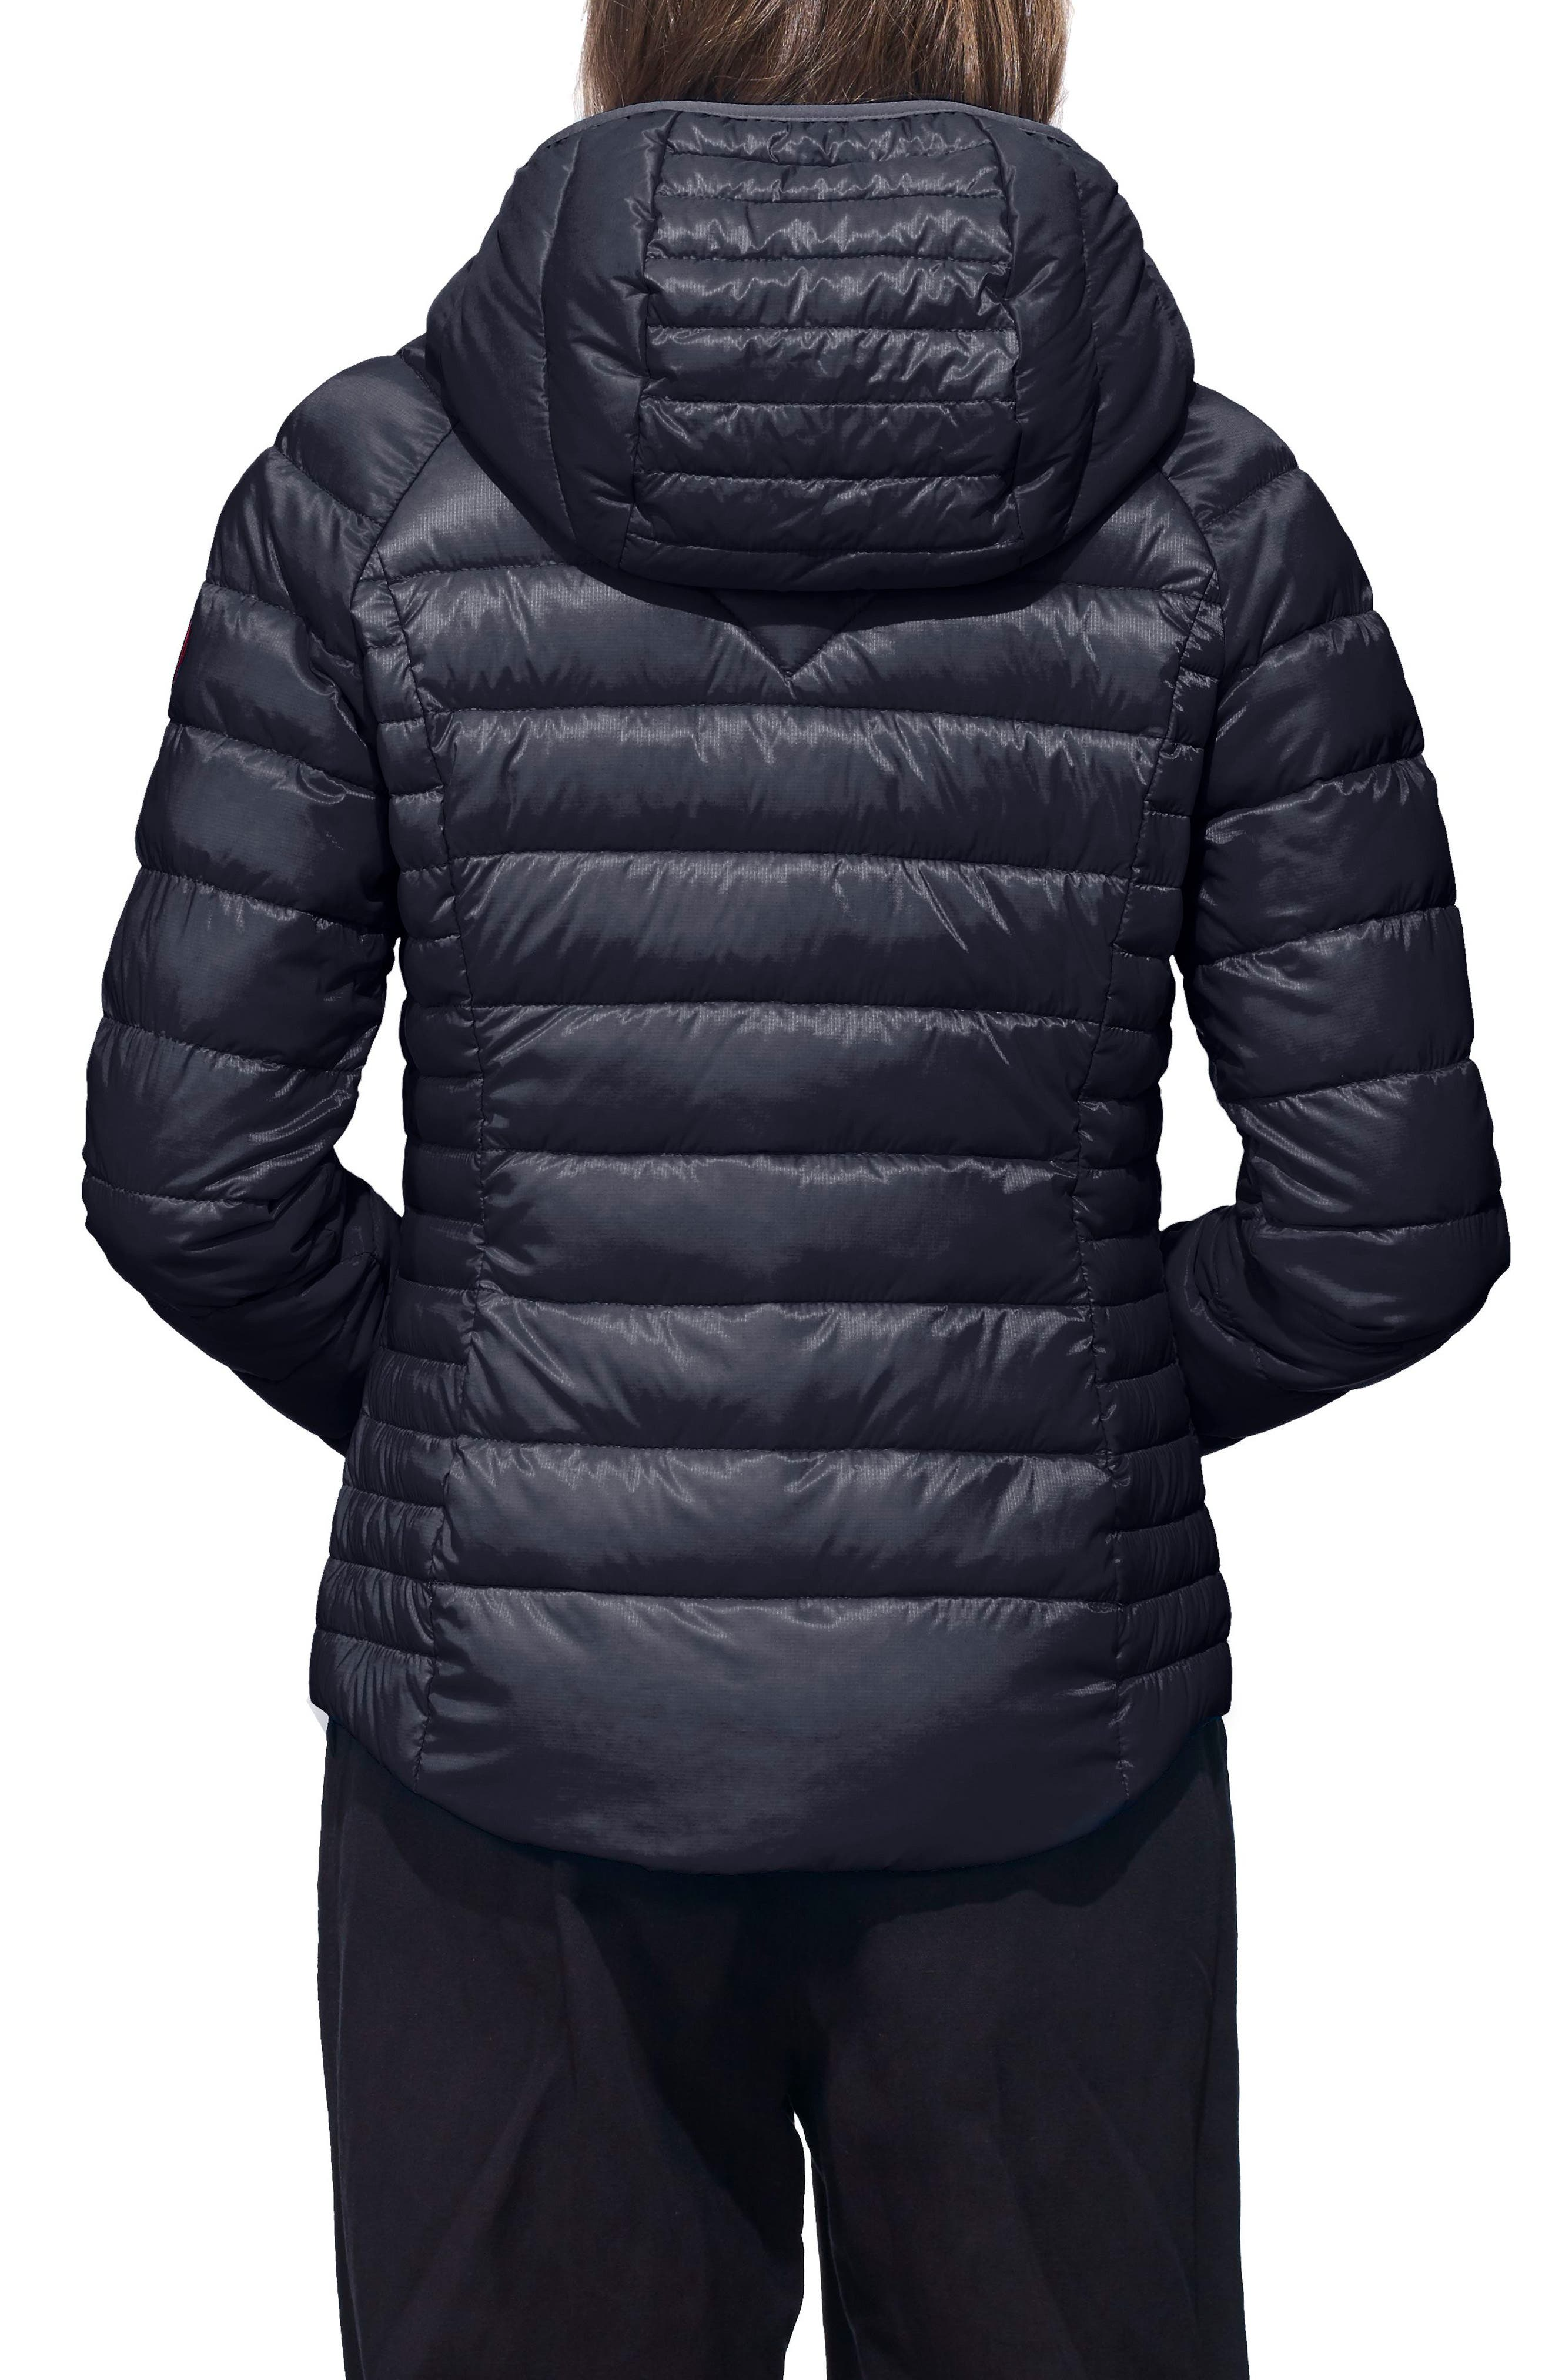 'Brookvale' Packable Hooded Quilted Down Jacket,                             Alternate thumbnail 2, color,                             ADMIRAL BLUE/ BLACK